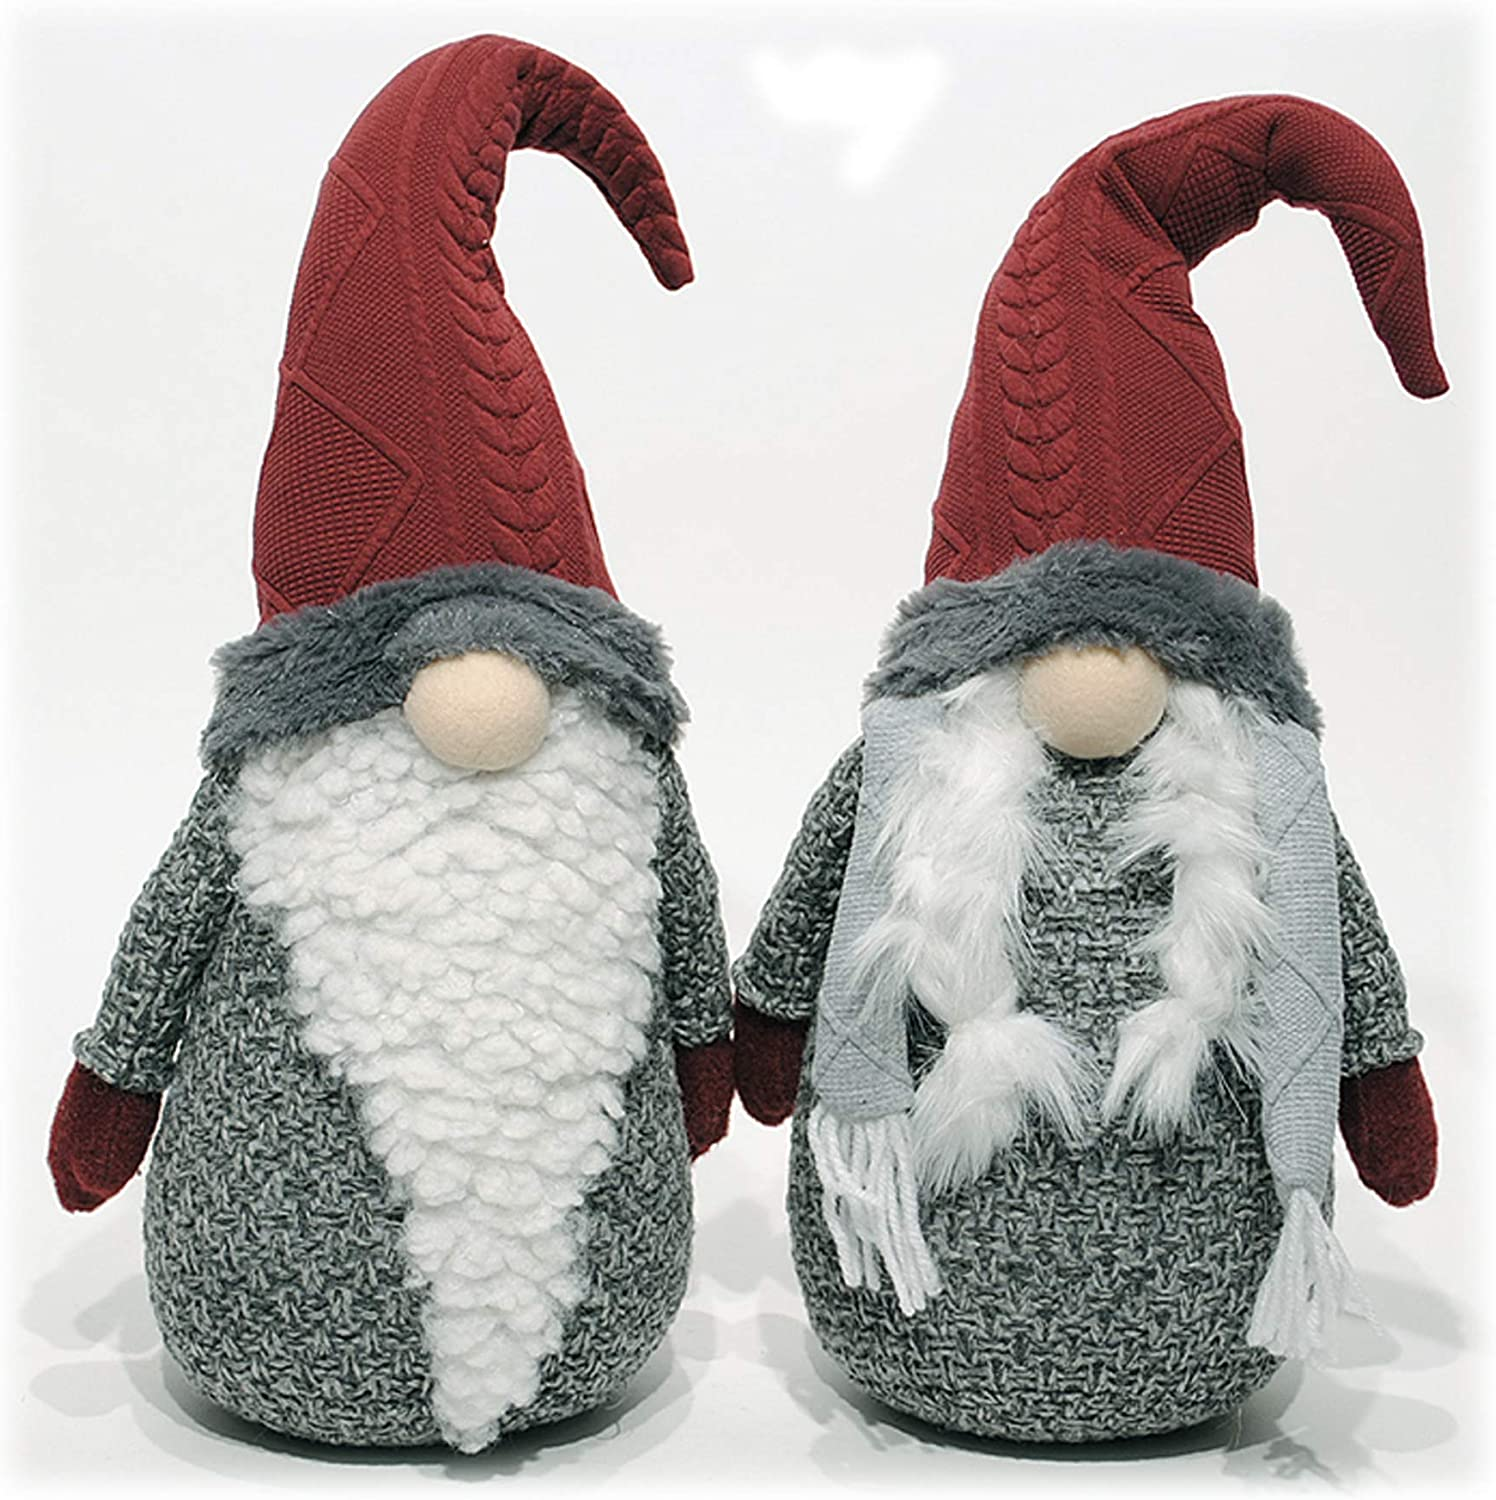 Top Hat Primitive White Penguin Figure Holiday Christmas Tree Ornament Gift Set